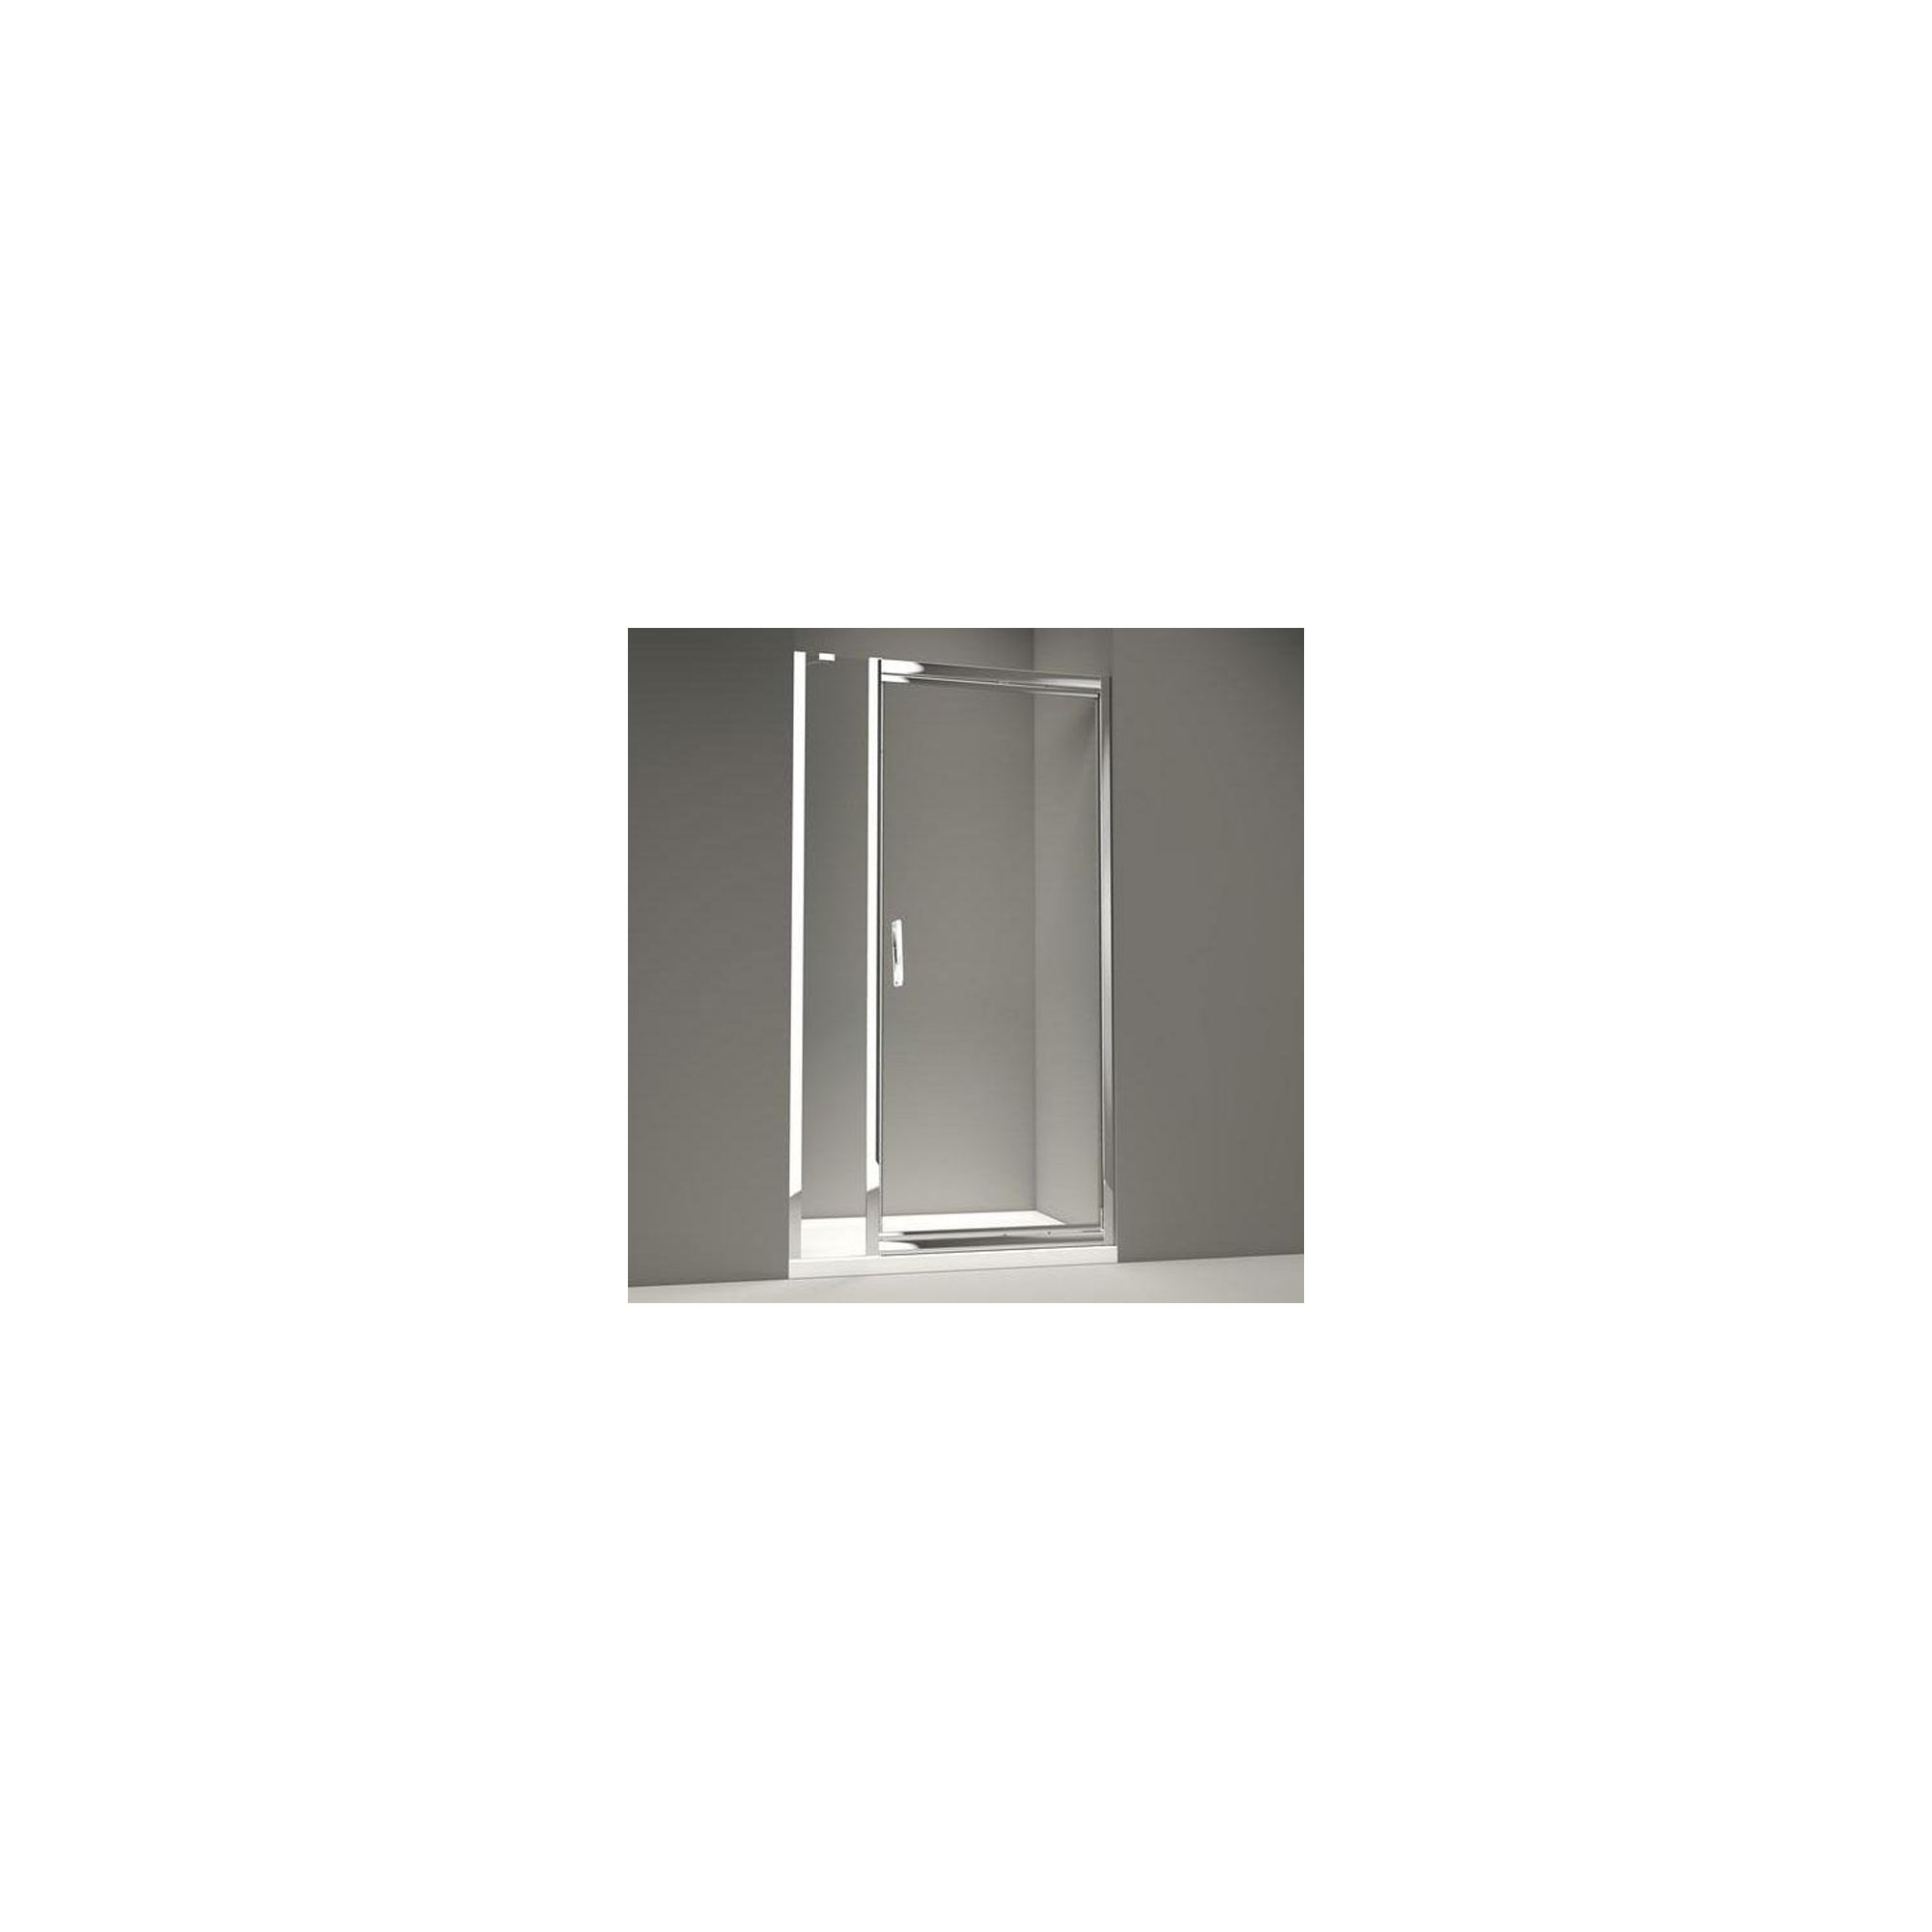 Merlyn Series 8 Inline Infold Shower Door, 1100mm Wide, Chrome Frame, 8mm Glass at Tesco Direct